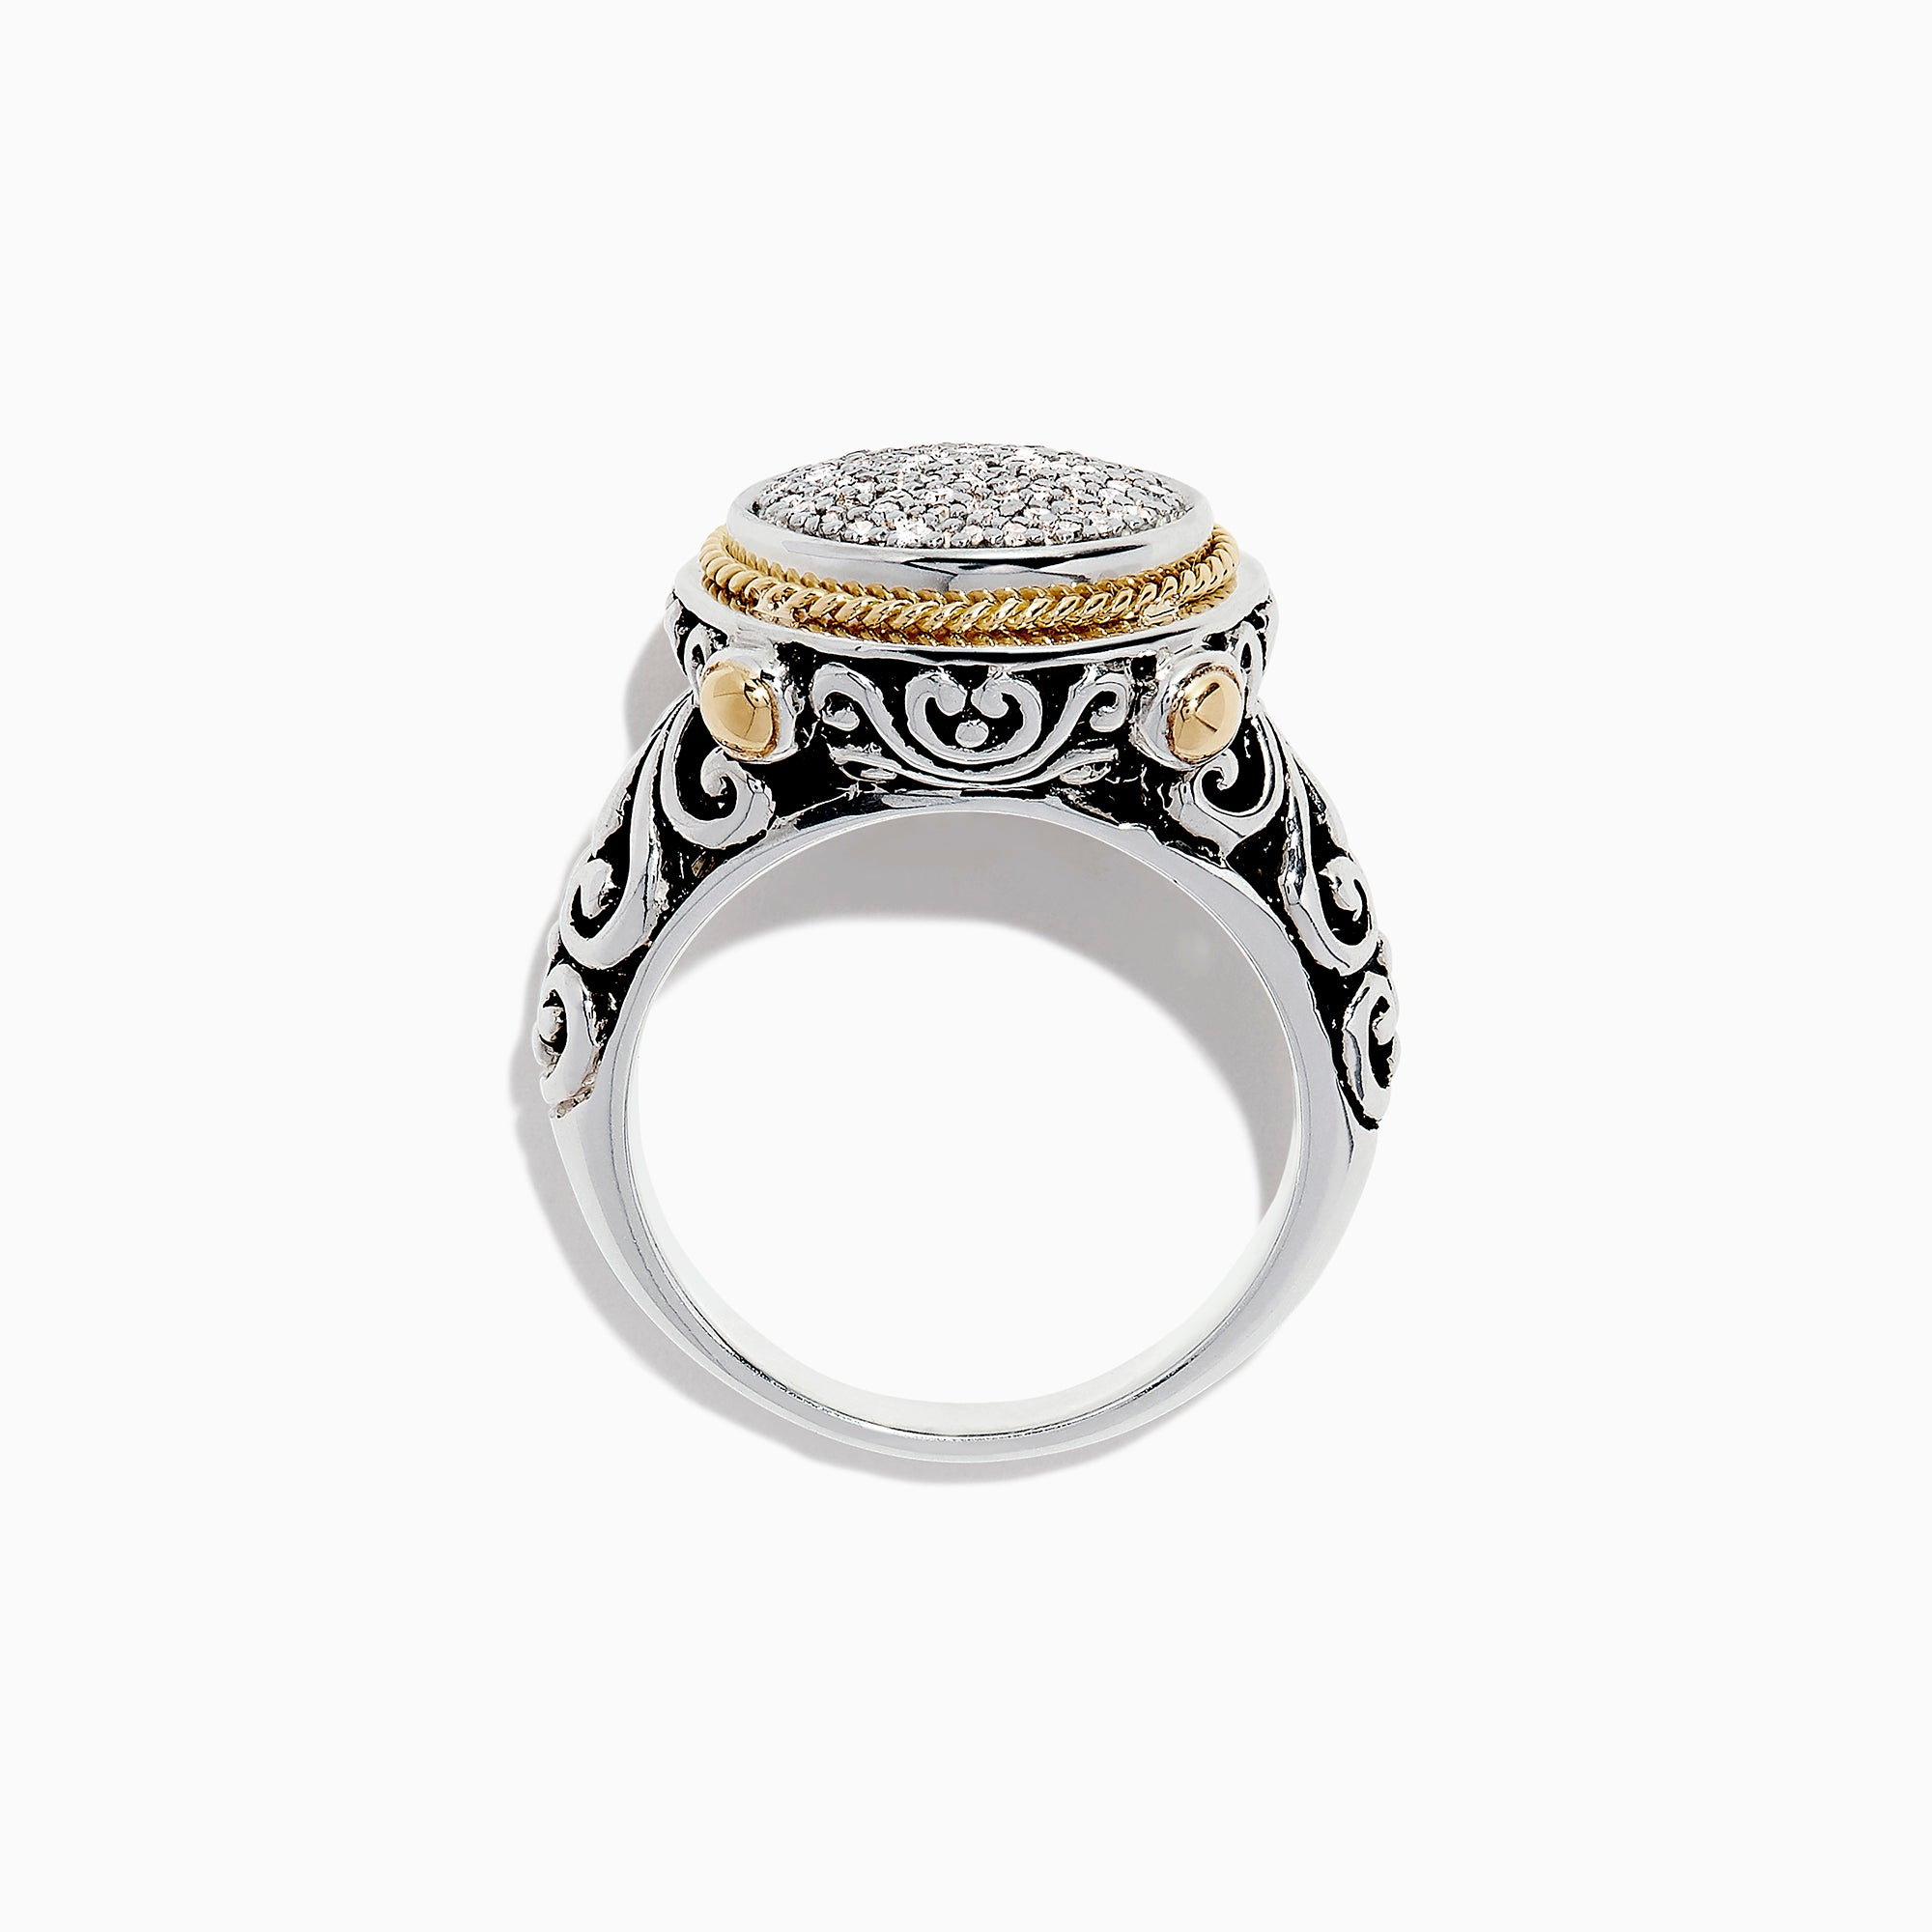 Effy 925 Sterling Silver & 18K Gold Diamond Ring, 0.22 TCW